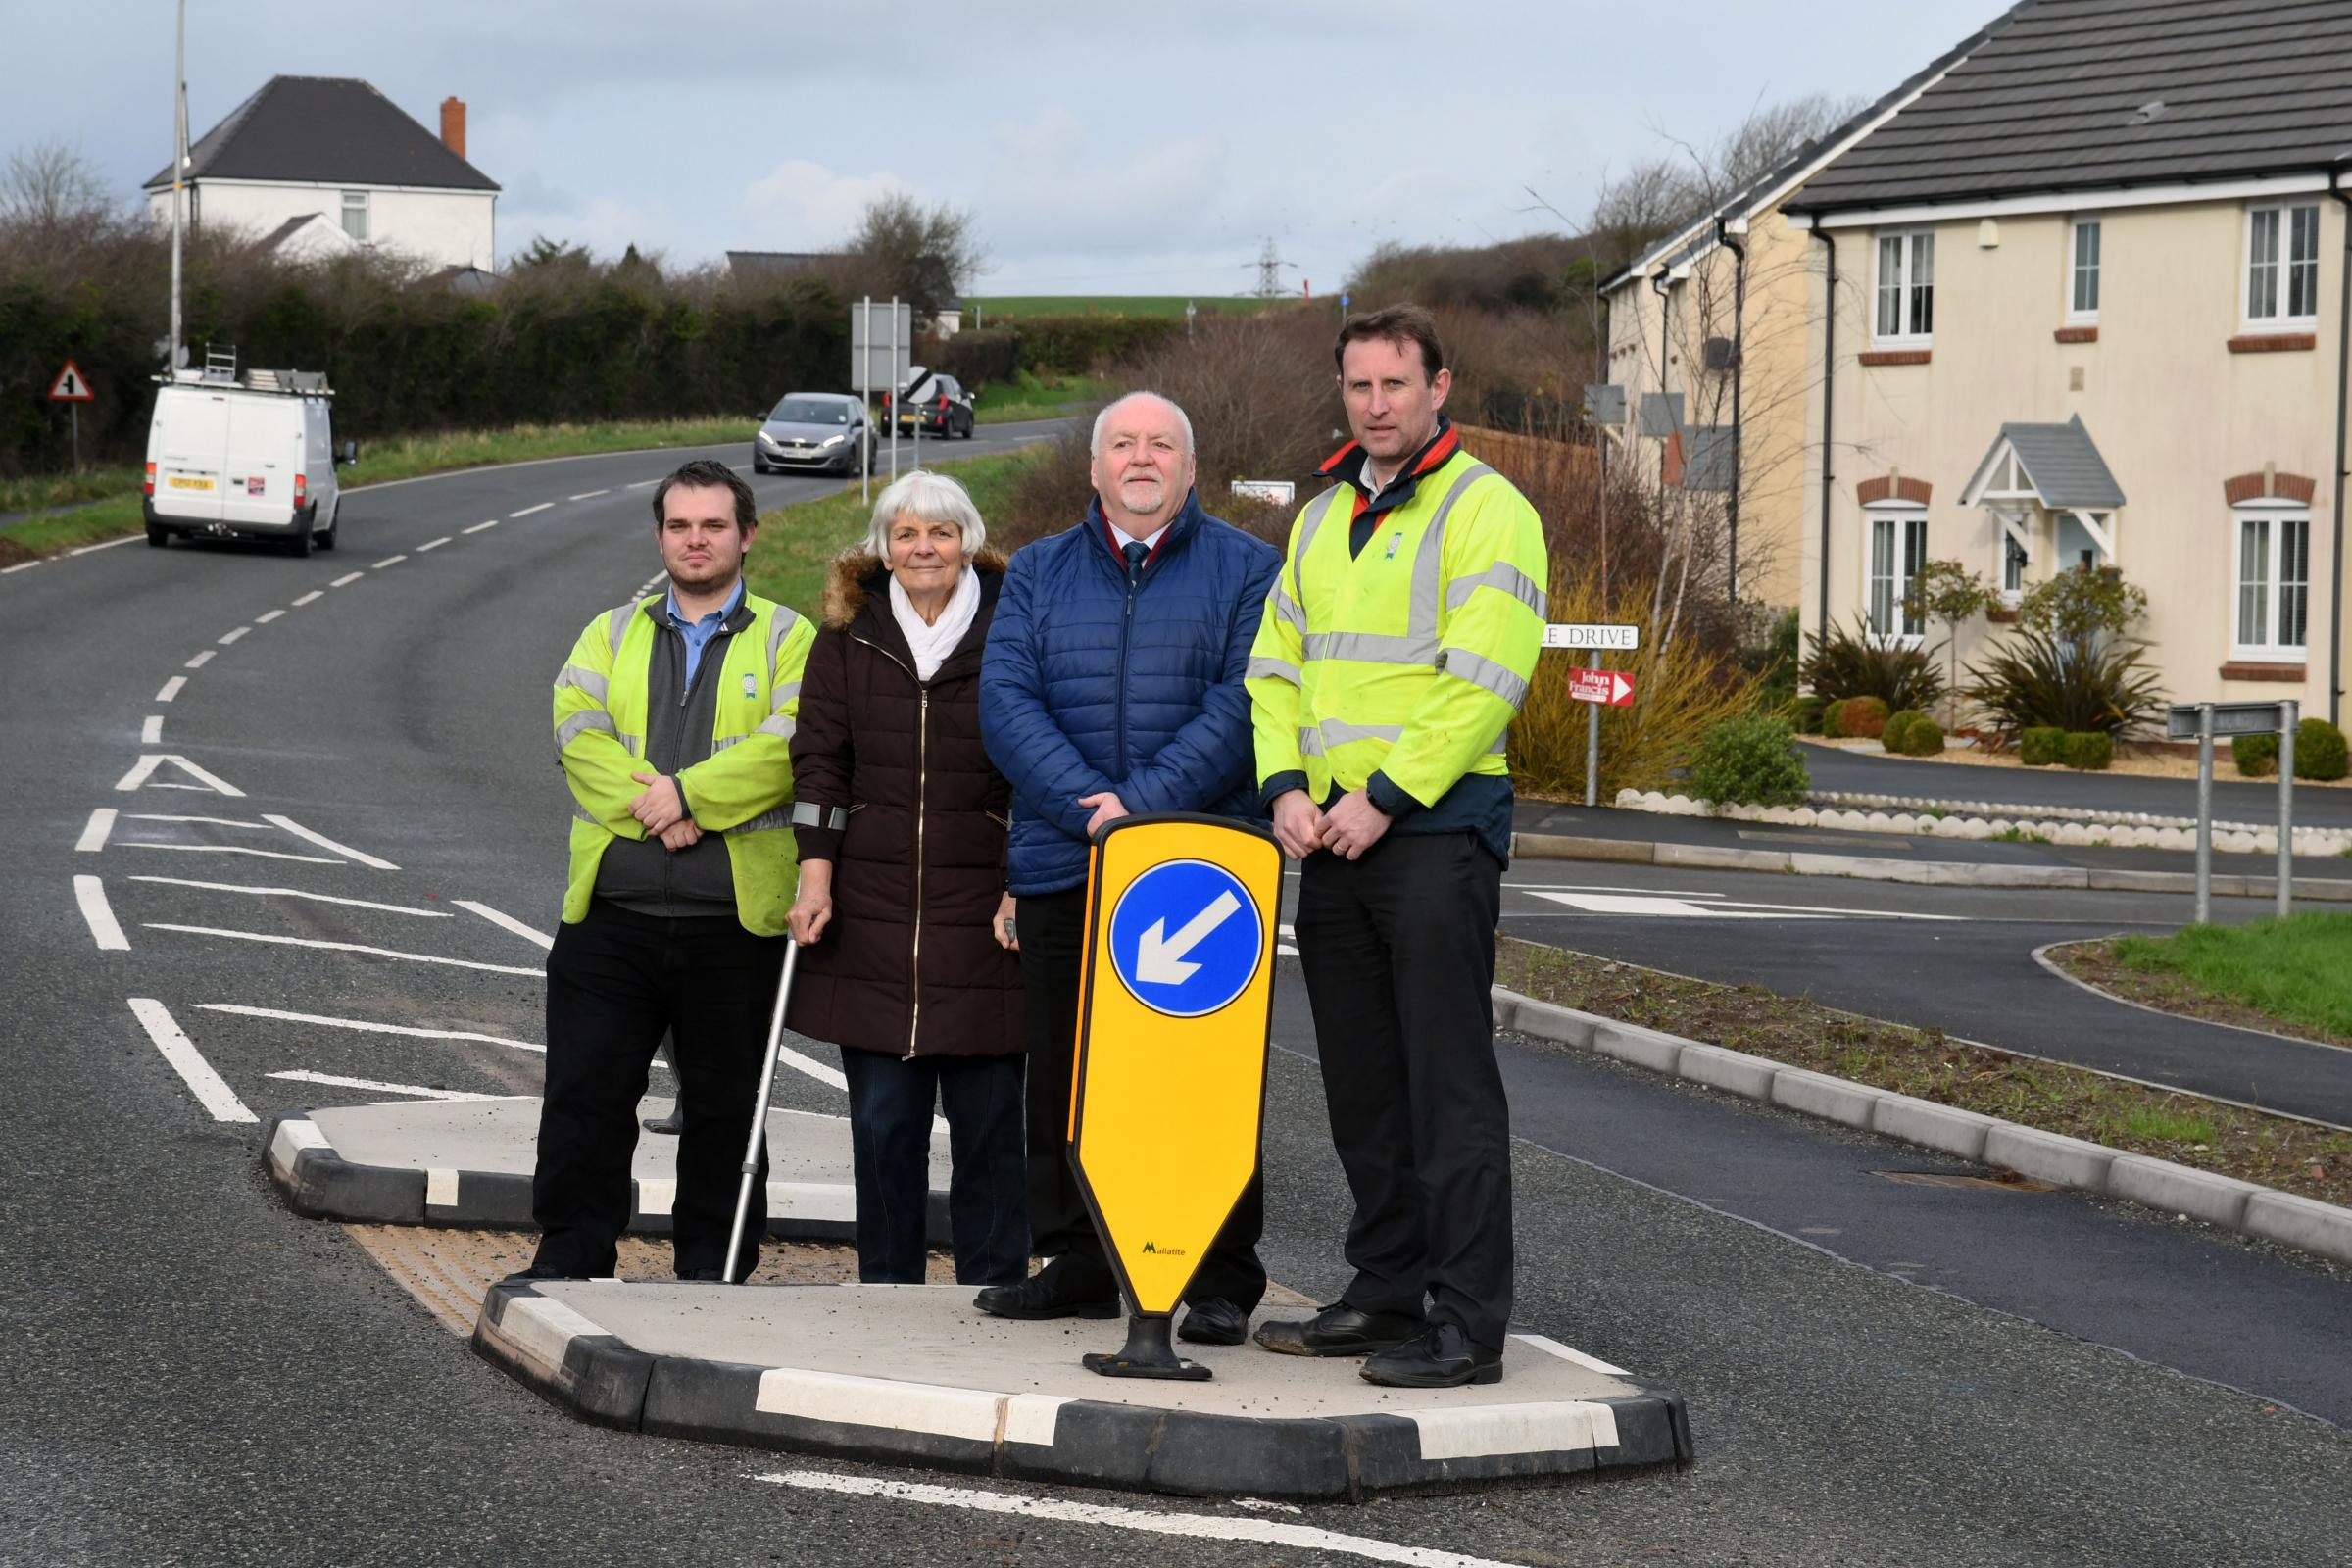 Pictured are Cllr Viv Stoddart, Cllr Phil Baker together with PCC Highways engineer Anthony Price and Highways technician Richard Murray.